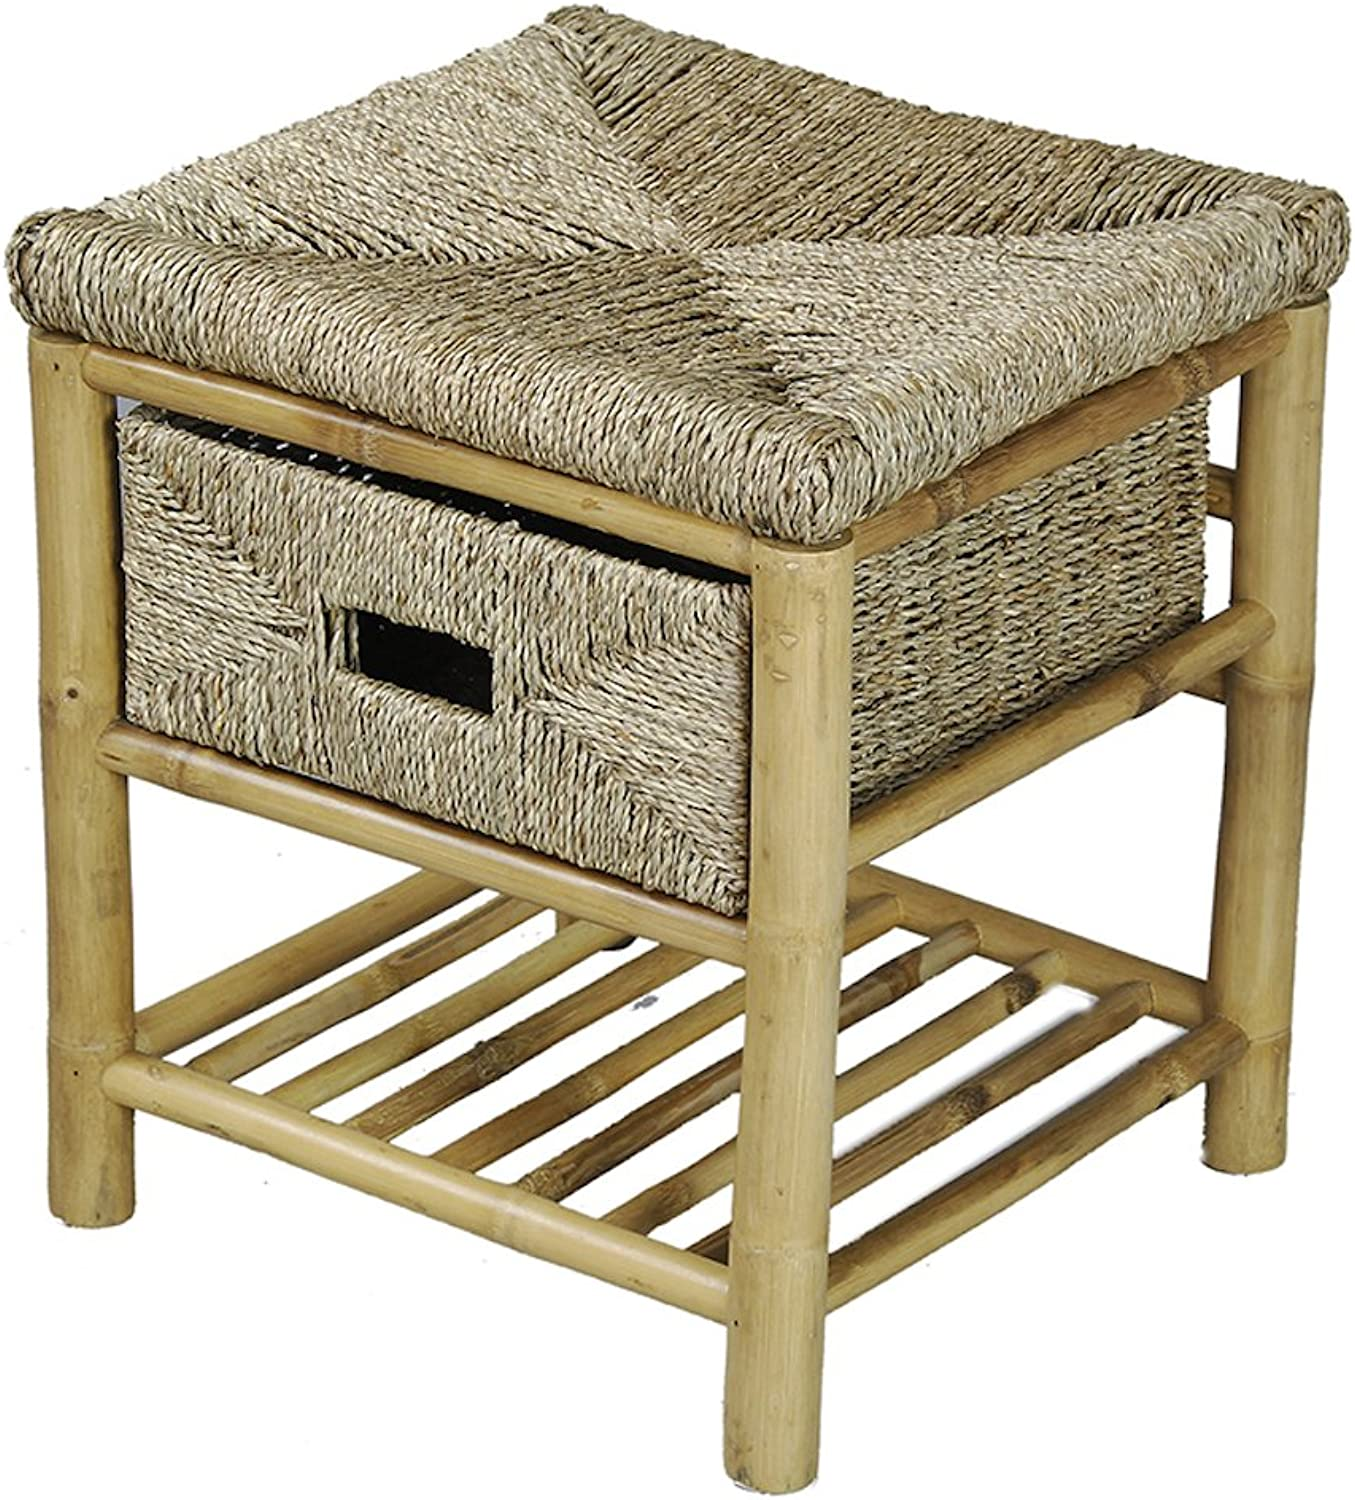 Heather Ann Creations Single Drawer Bamboo Open Frame Bench with Seagrass Weave and Shelf, 18.1-Inch, Natural